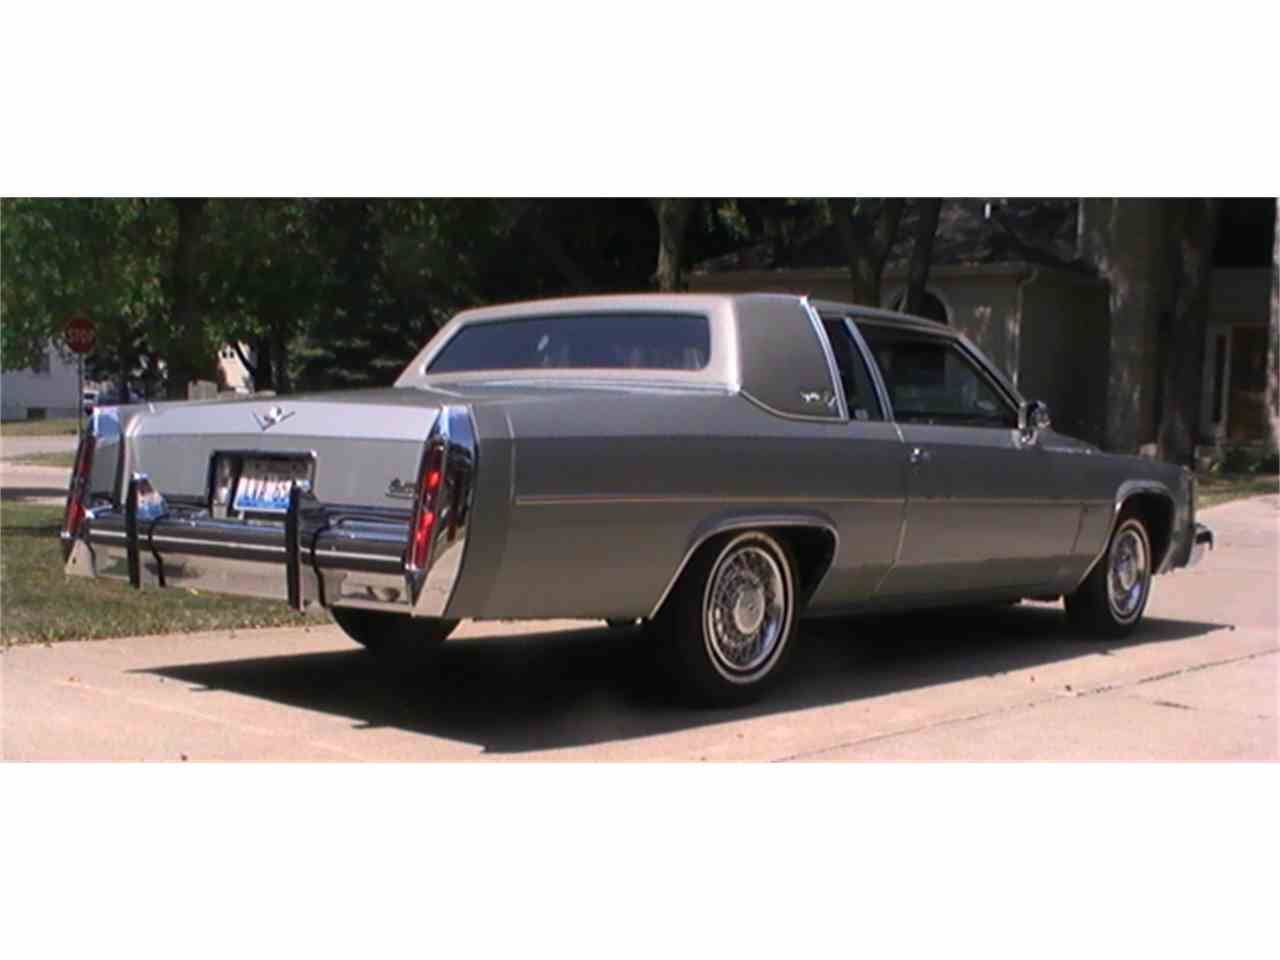 Large Picture of 1983 Cadillac Coupe DeVille located in Illinois - $13,500.00 Offered by a Private Seller - KBYE